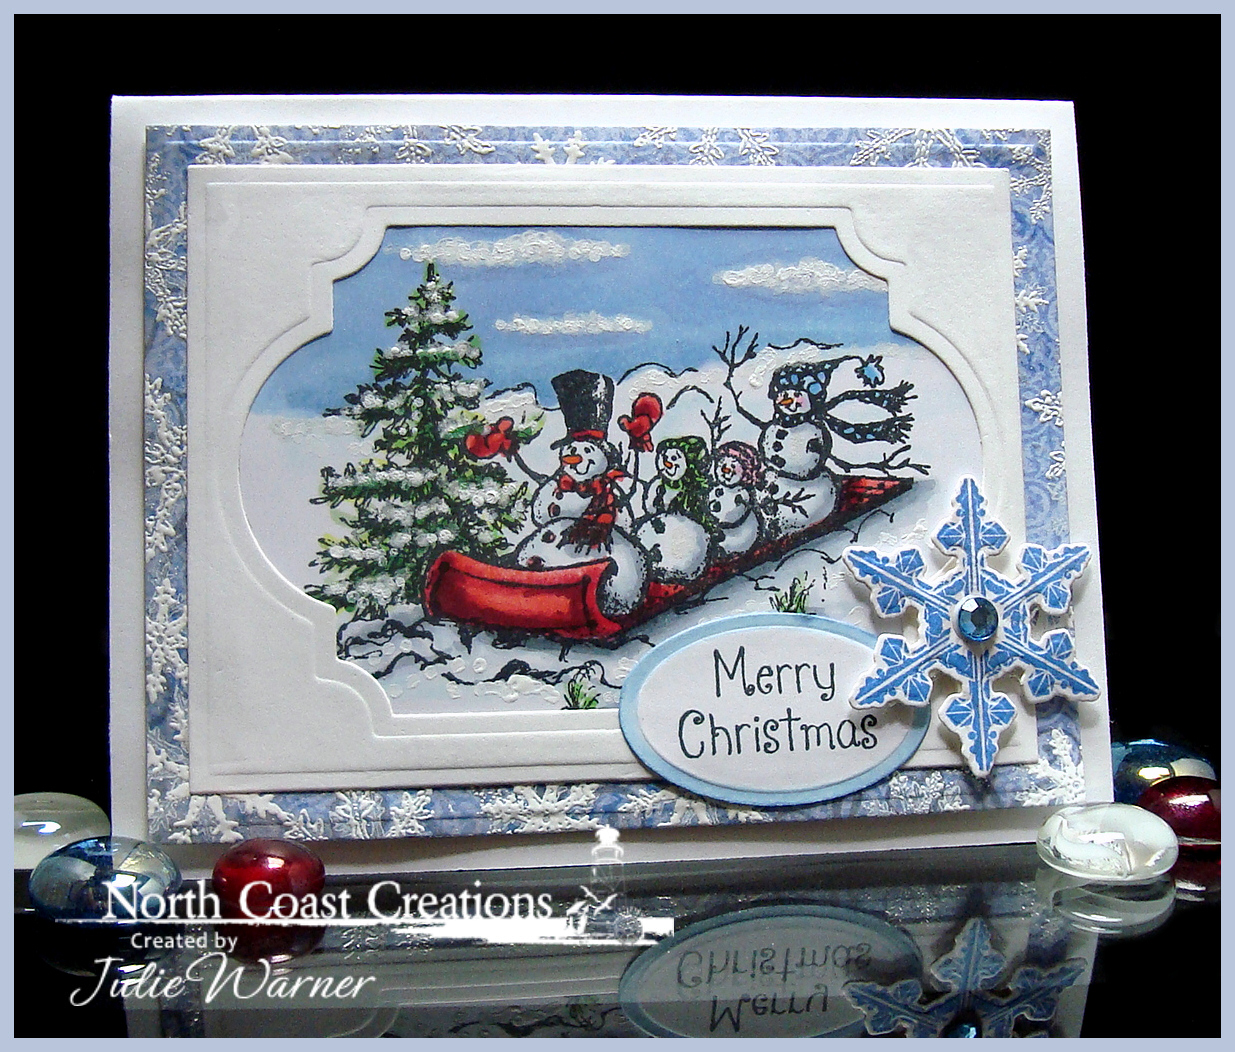 Stamps - North Coast Creations Snowman Family, Our Daily Bread Designs Christian Faith Paper Collection, Our Daily Bread Designs Sparkling Snowflakes, Our Daily Bread Designs Custom Snowflake Dies